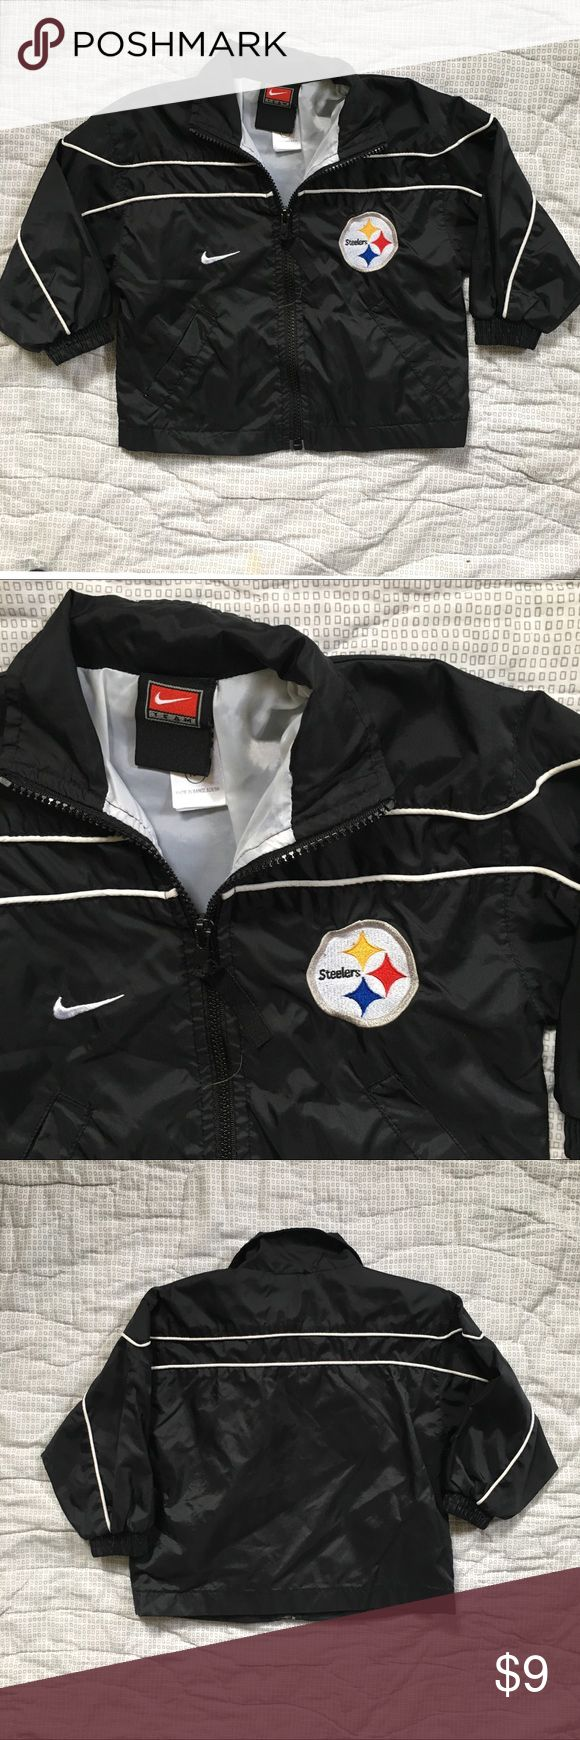 Pittsburgh Steelers NFL jacket 18 Months coat Pittsburgh Steelers Nike NFL football jacket in EUC. Black, gold and white. Smoke free home. Size 18 months. Full zipper up the front. No good. Lightweight this would be more of a raincoat or early fall/late spring jacket. Nike Jackets & Coats